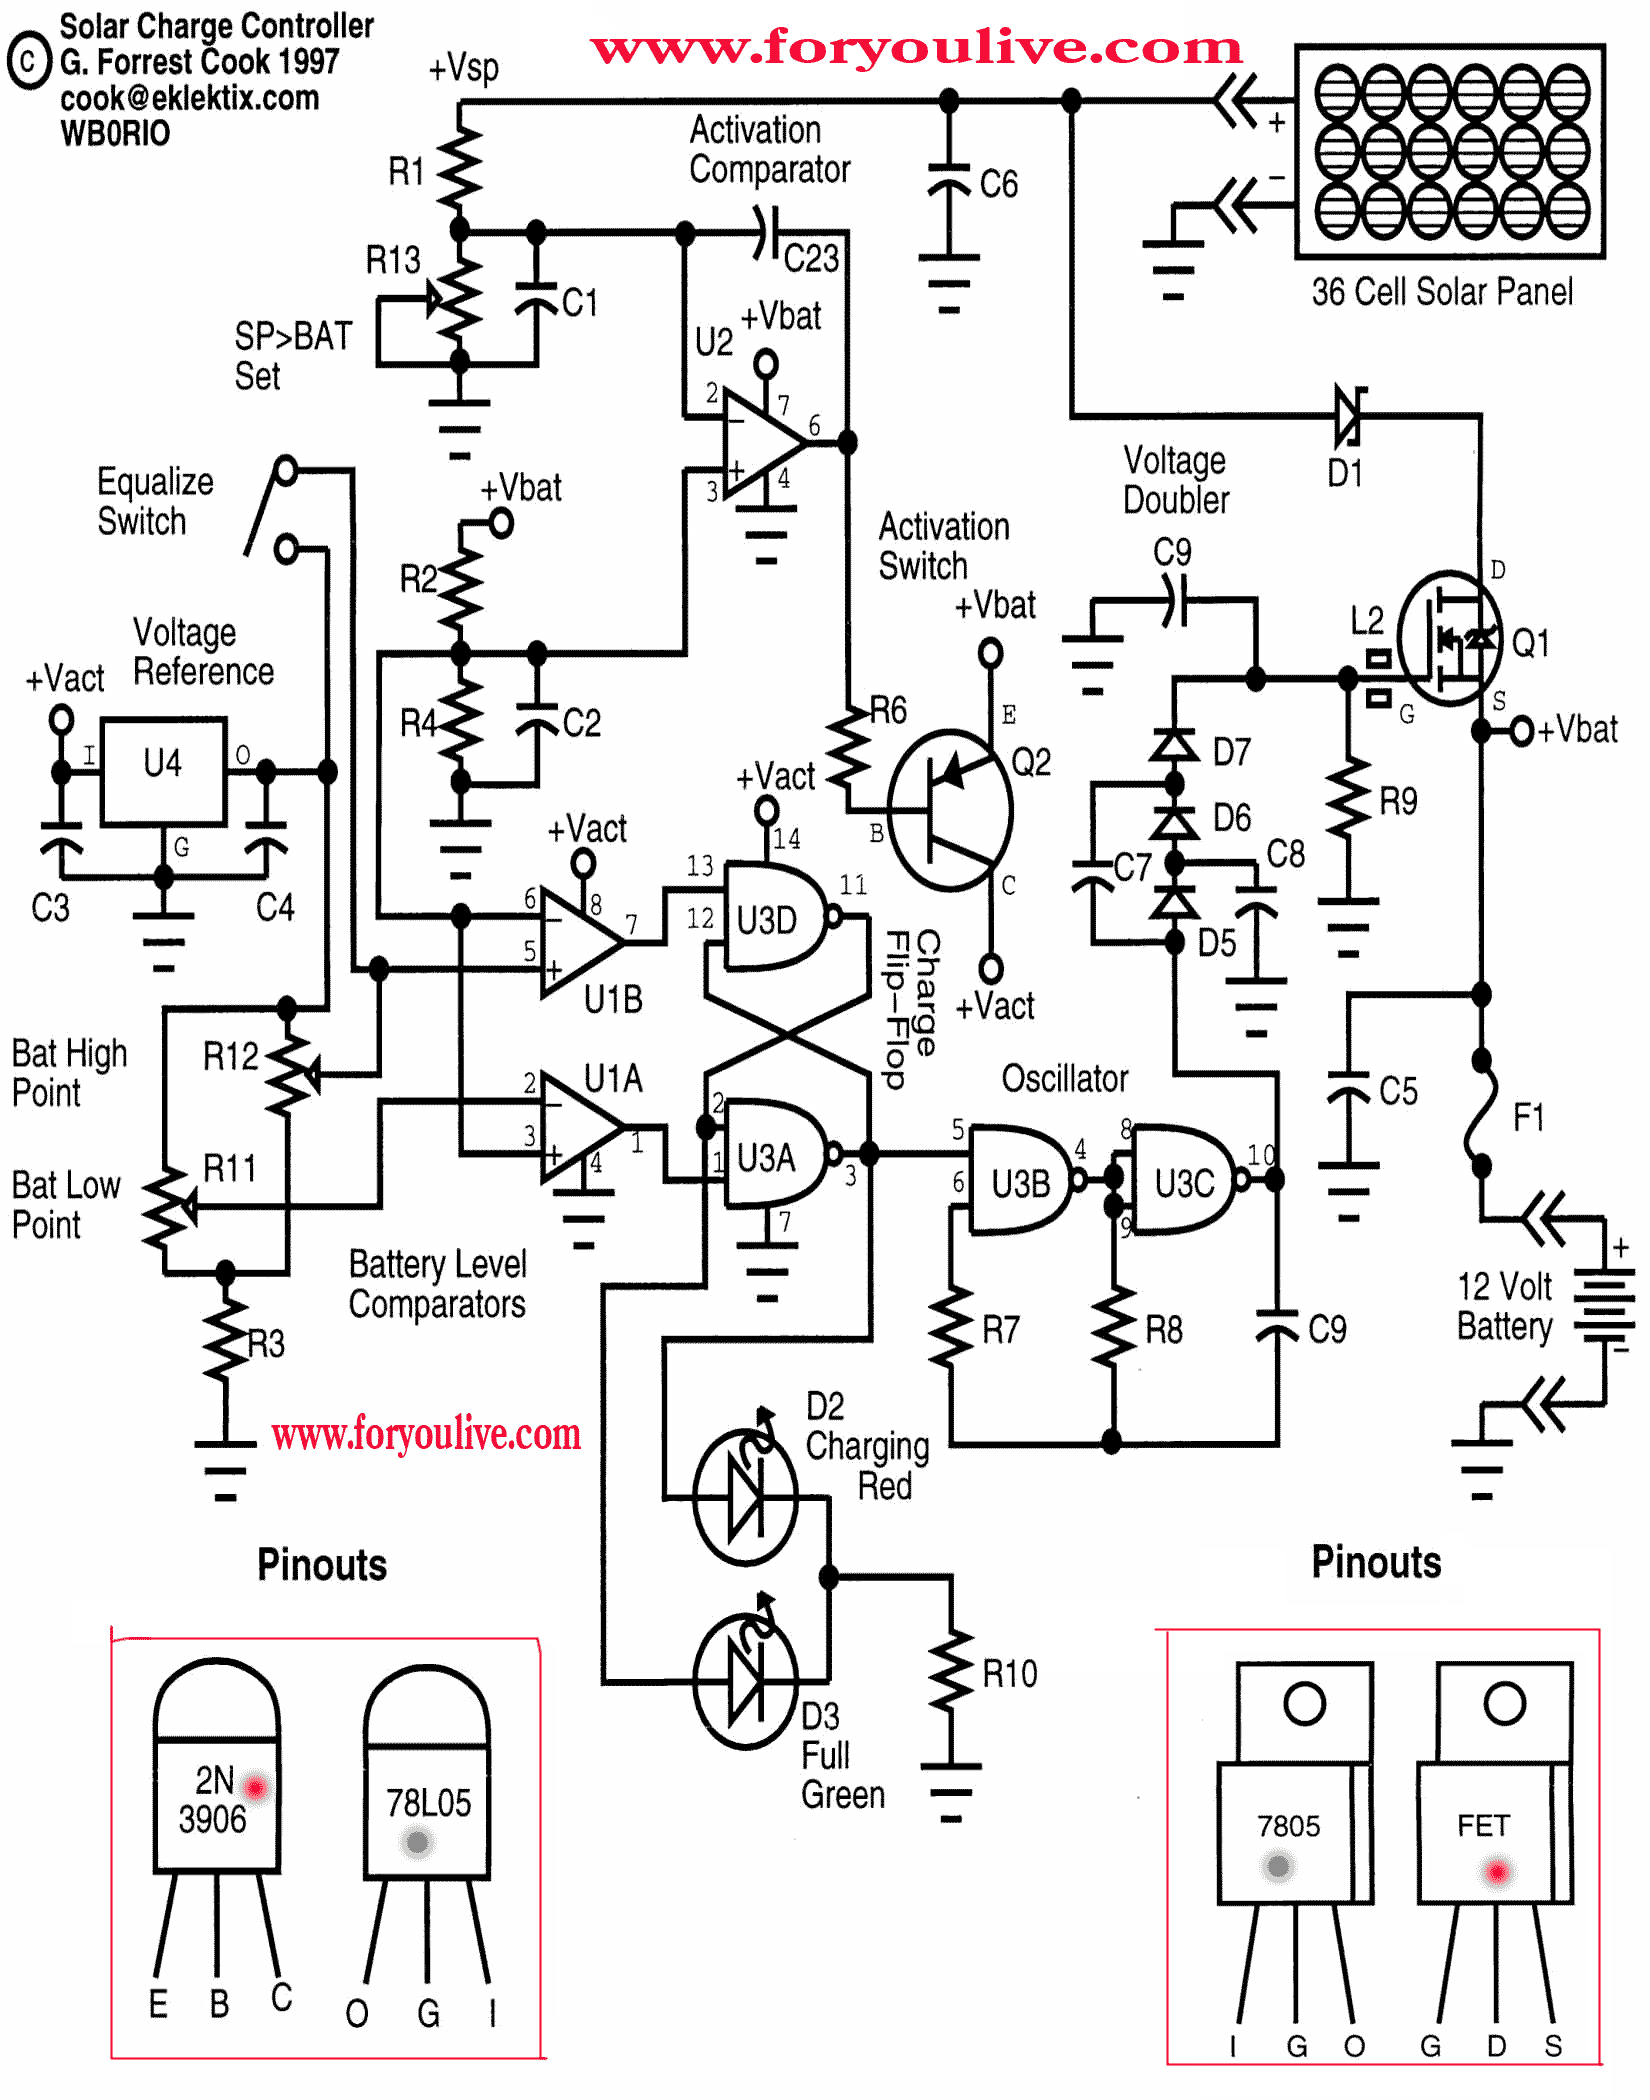 small resolution of solar panel circuit 5volt regulate voltage 2n3906 is transistor for current caring irfz34 power